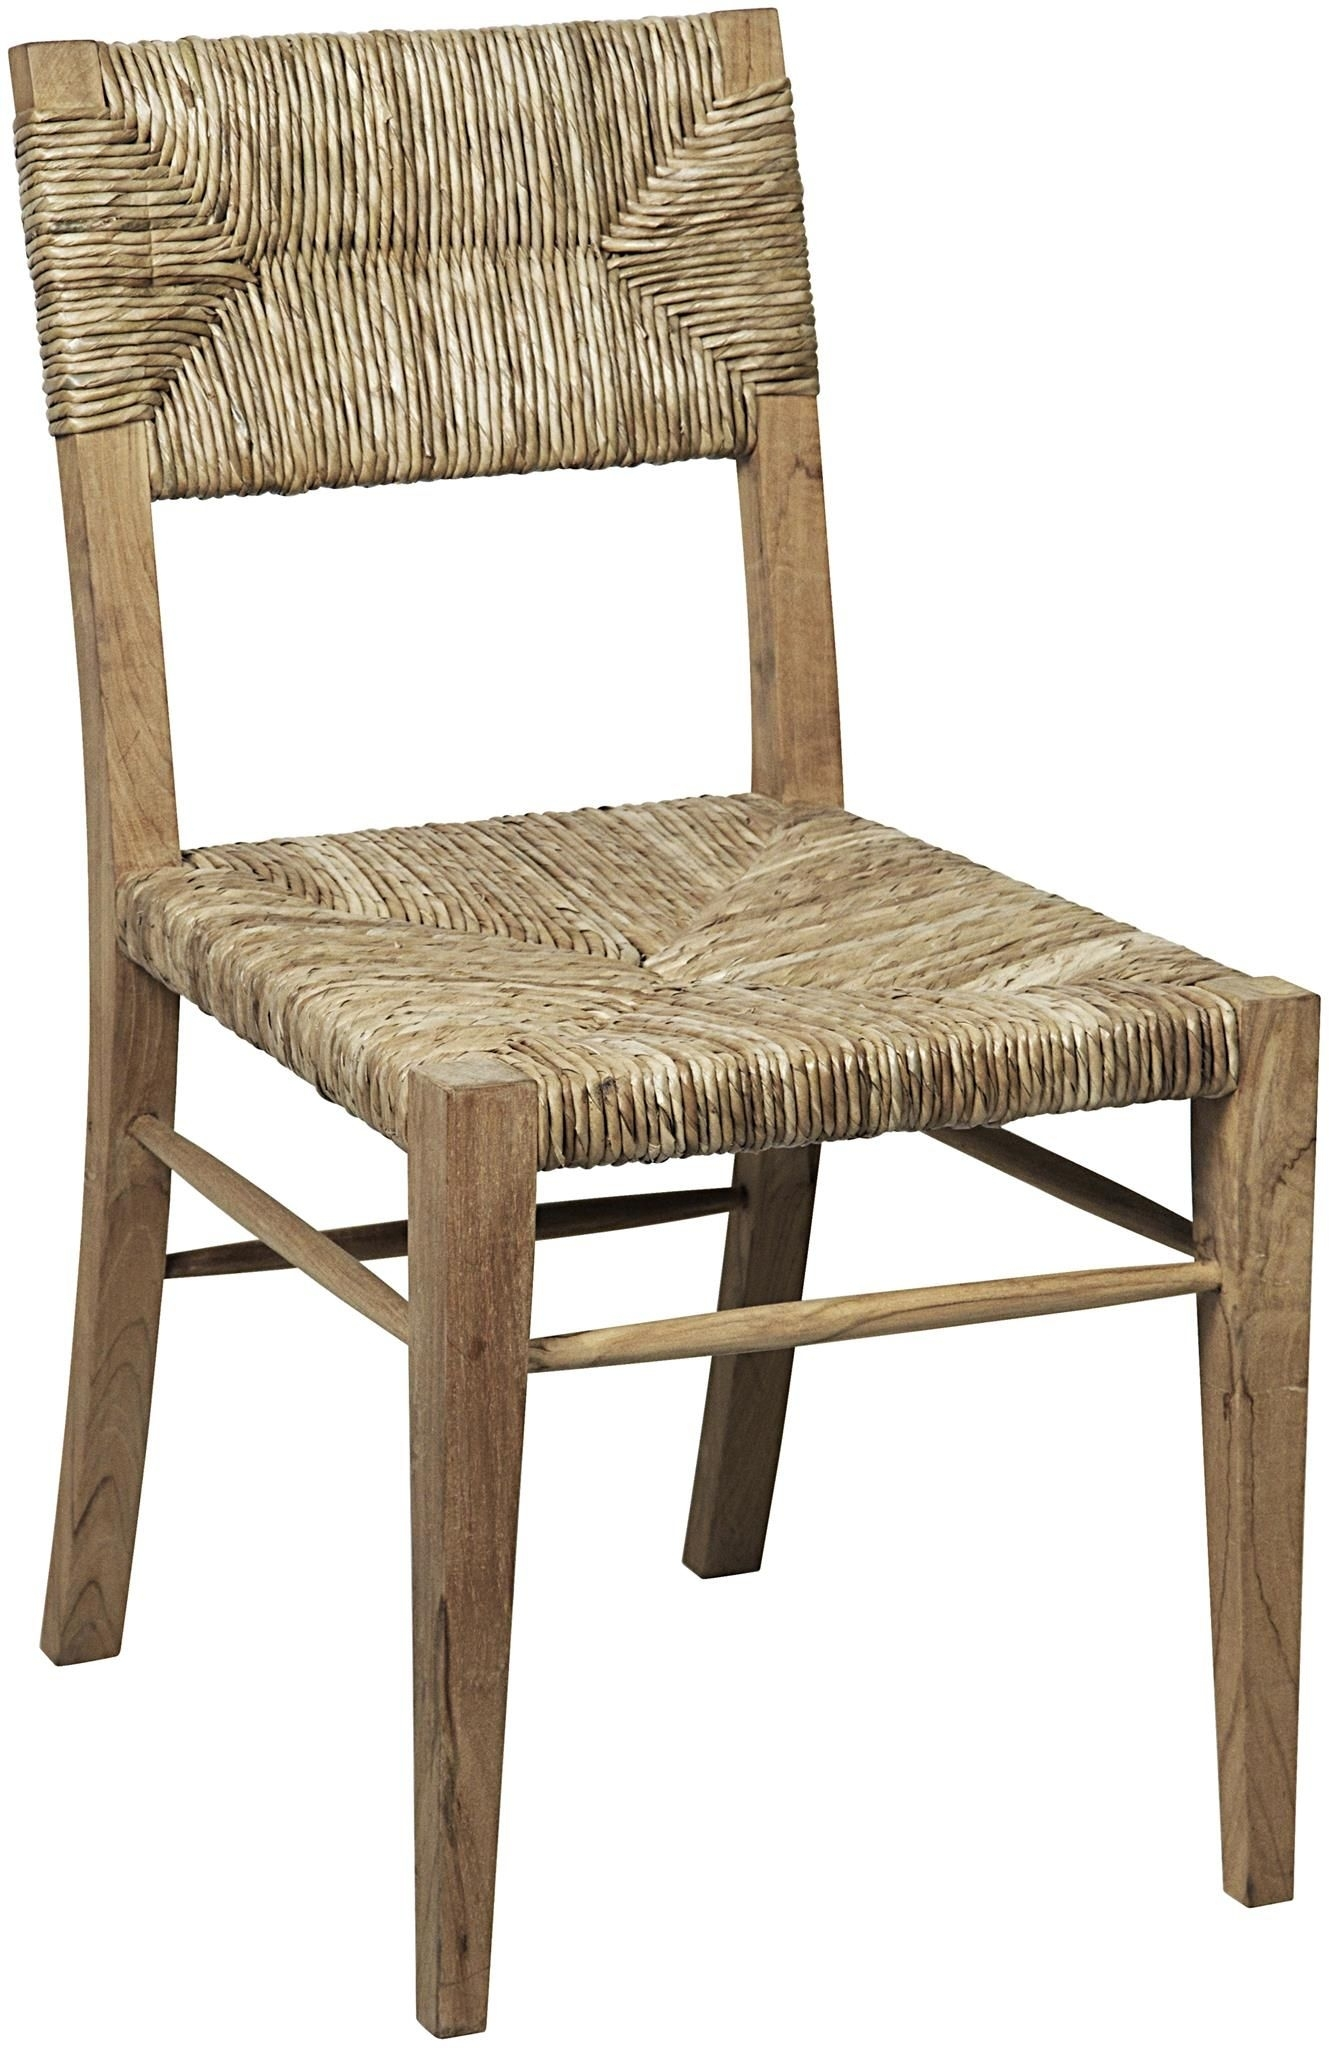 Home Sweet Home Throughout Durango Smoke & Warm Cedar Dining Chairs (#11 of 20)